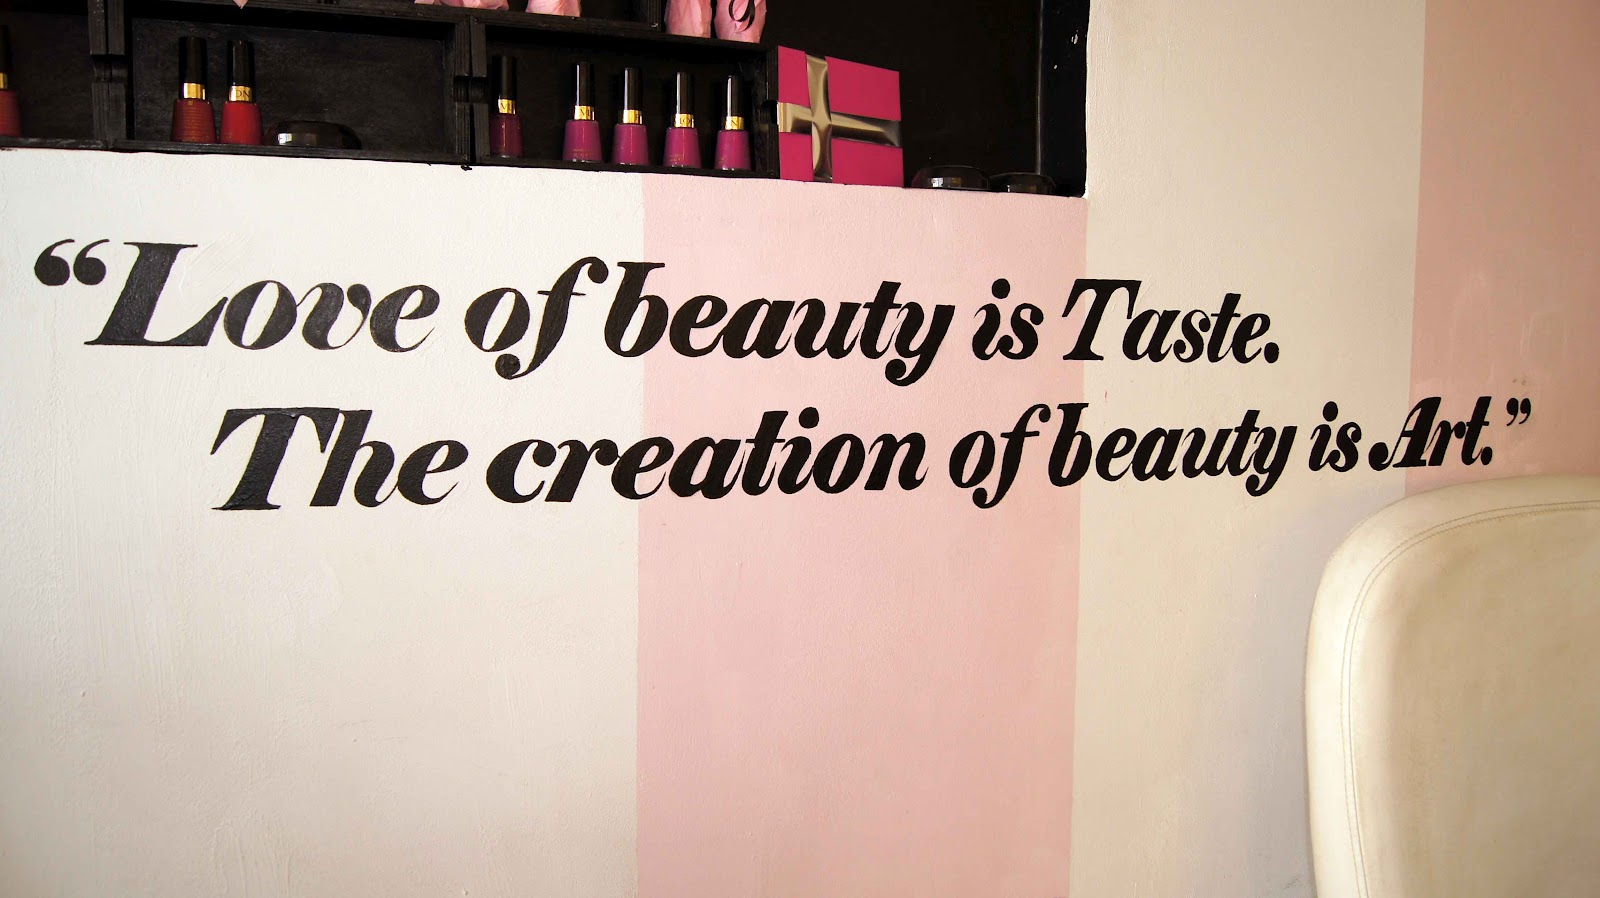 success factors of selected beauty salon Landscape study: beauty, health & wellness industry agenda the success factors for the nutraceutical, cosmeceutical and nutricosmetic segments are different and driven by geography beauty salon chains.